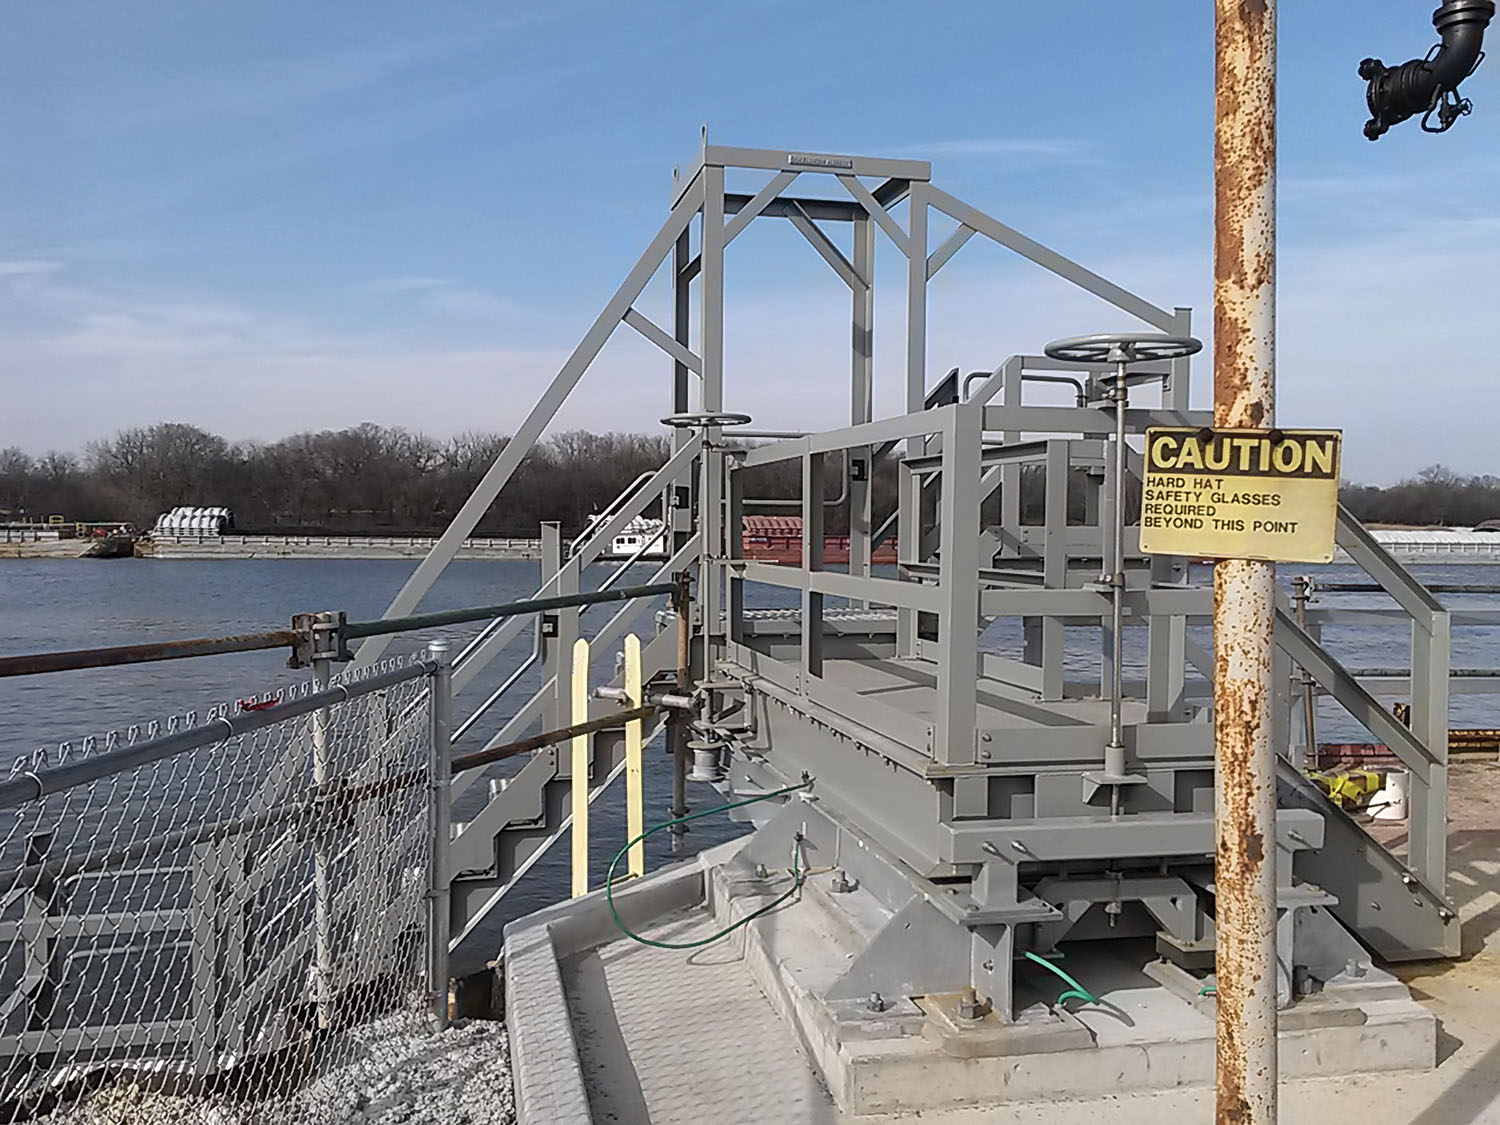 Ladder system provides safe and efficient transfer from dock to barge.